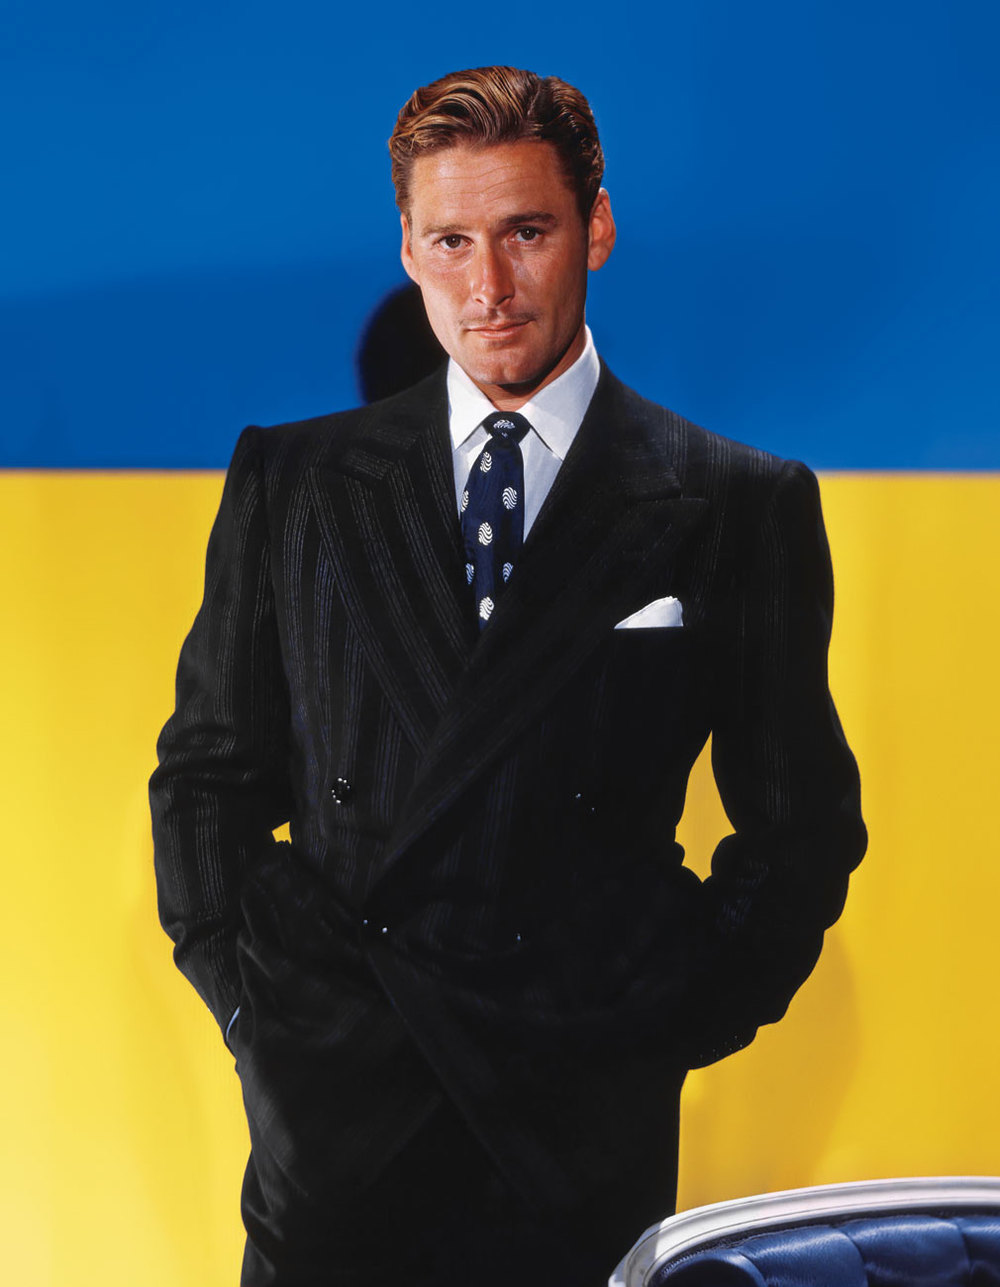 Errol Flynn (never realized how much he looks like my father until I saw this photo)